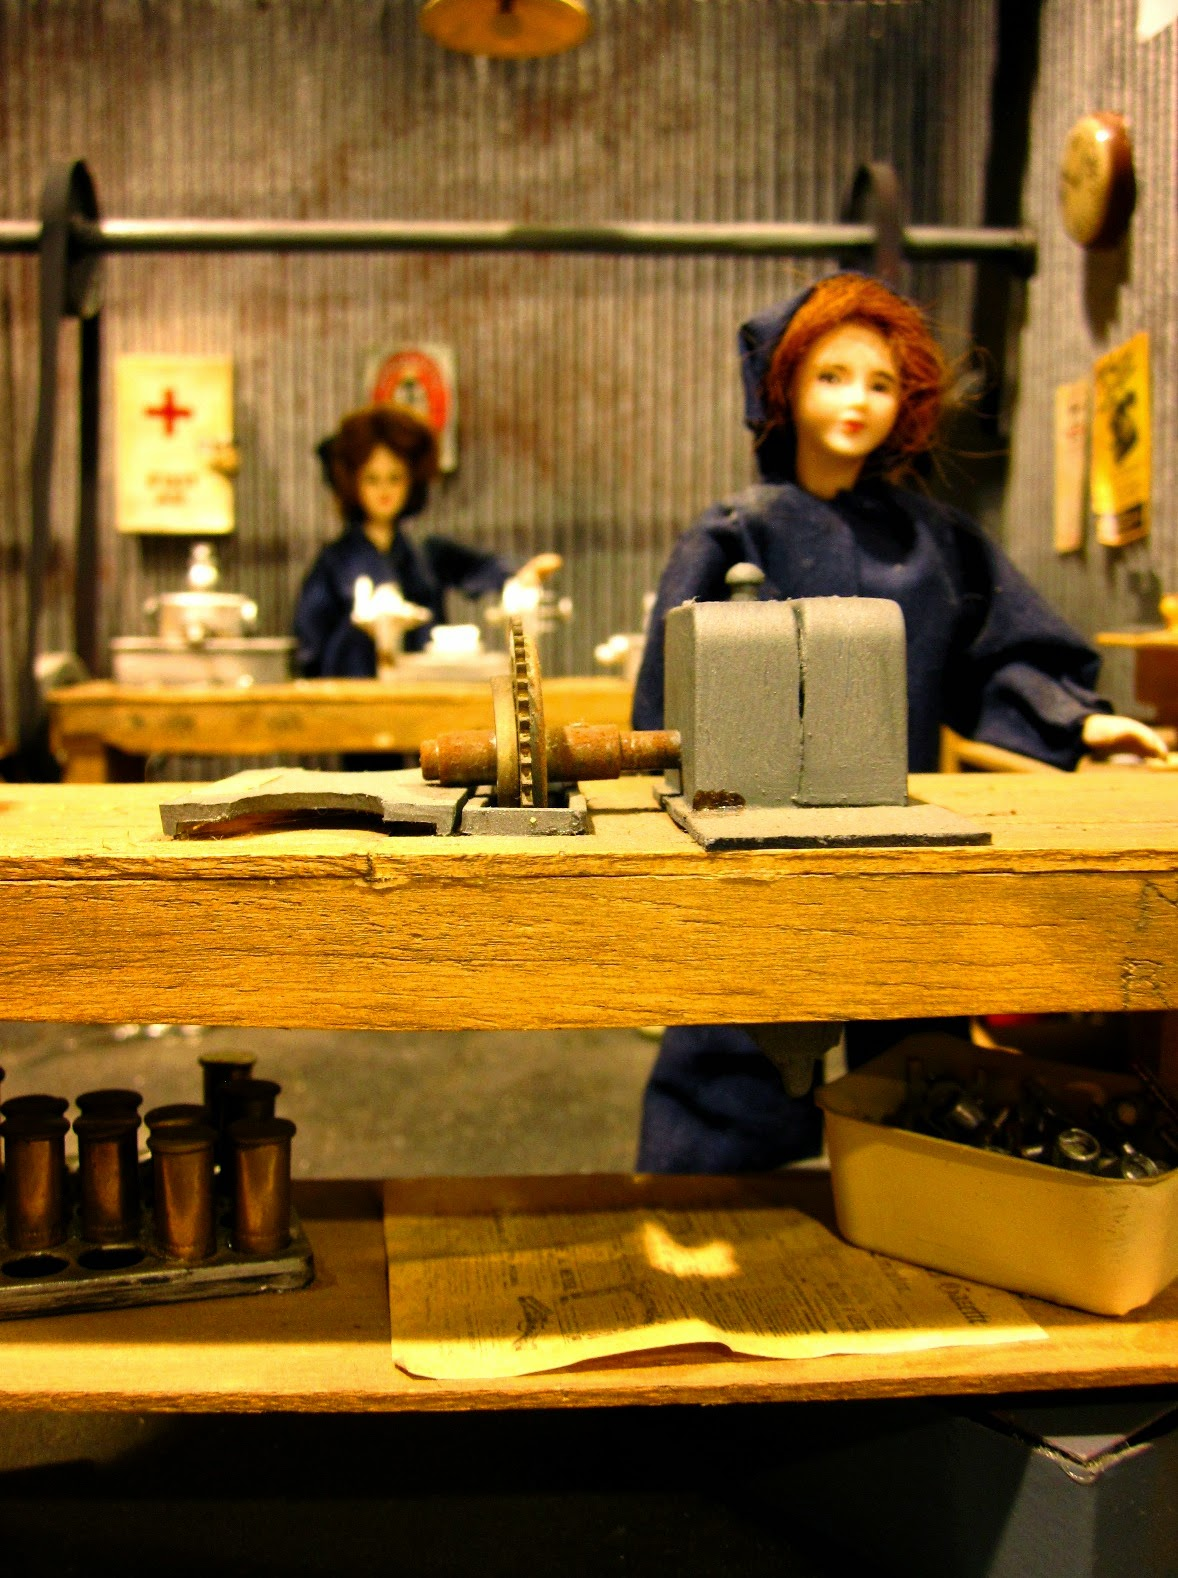 Dolls house miniature of a wartime munitions factory with two dolls at machines.